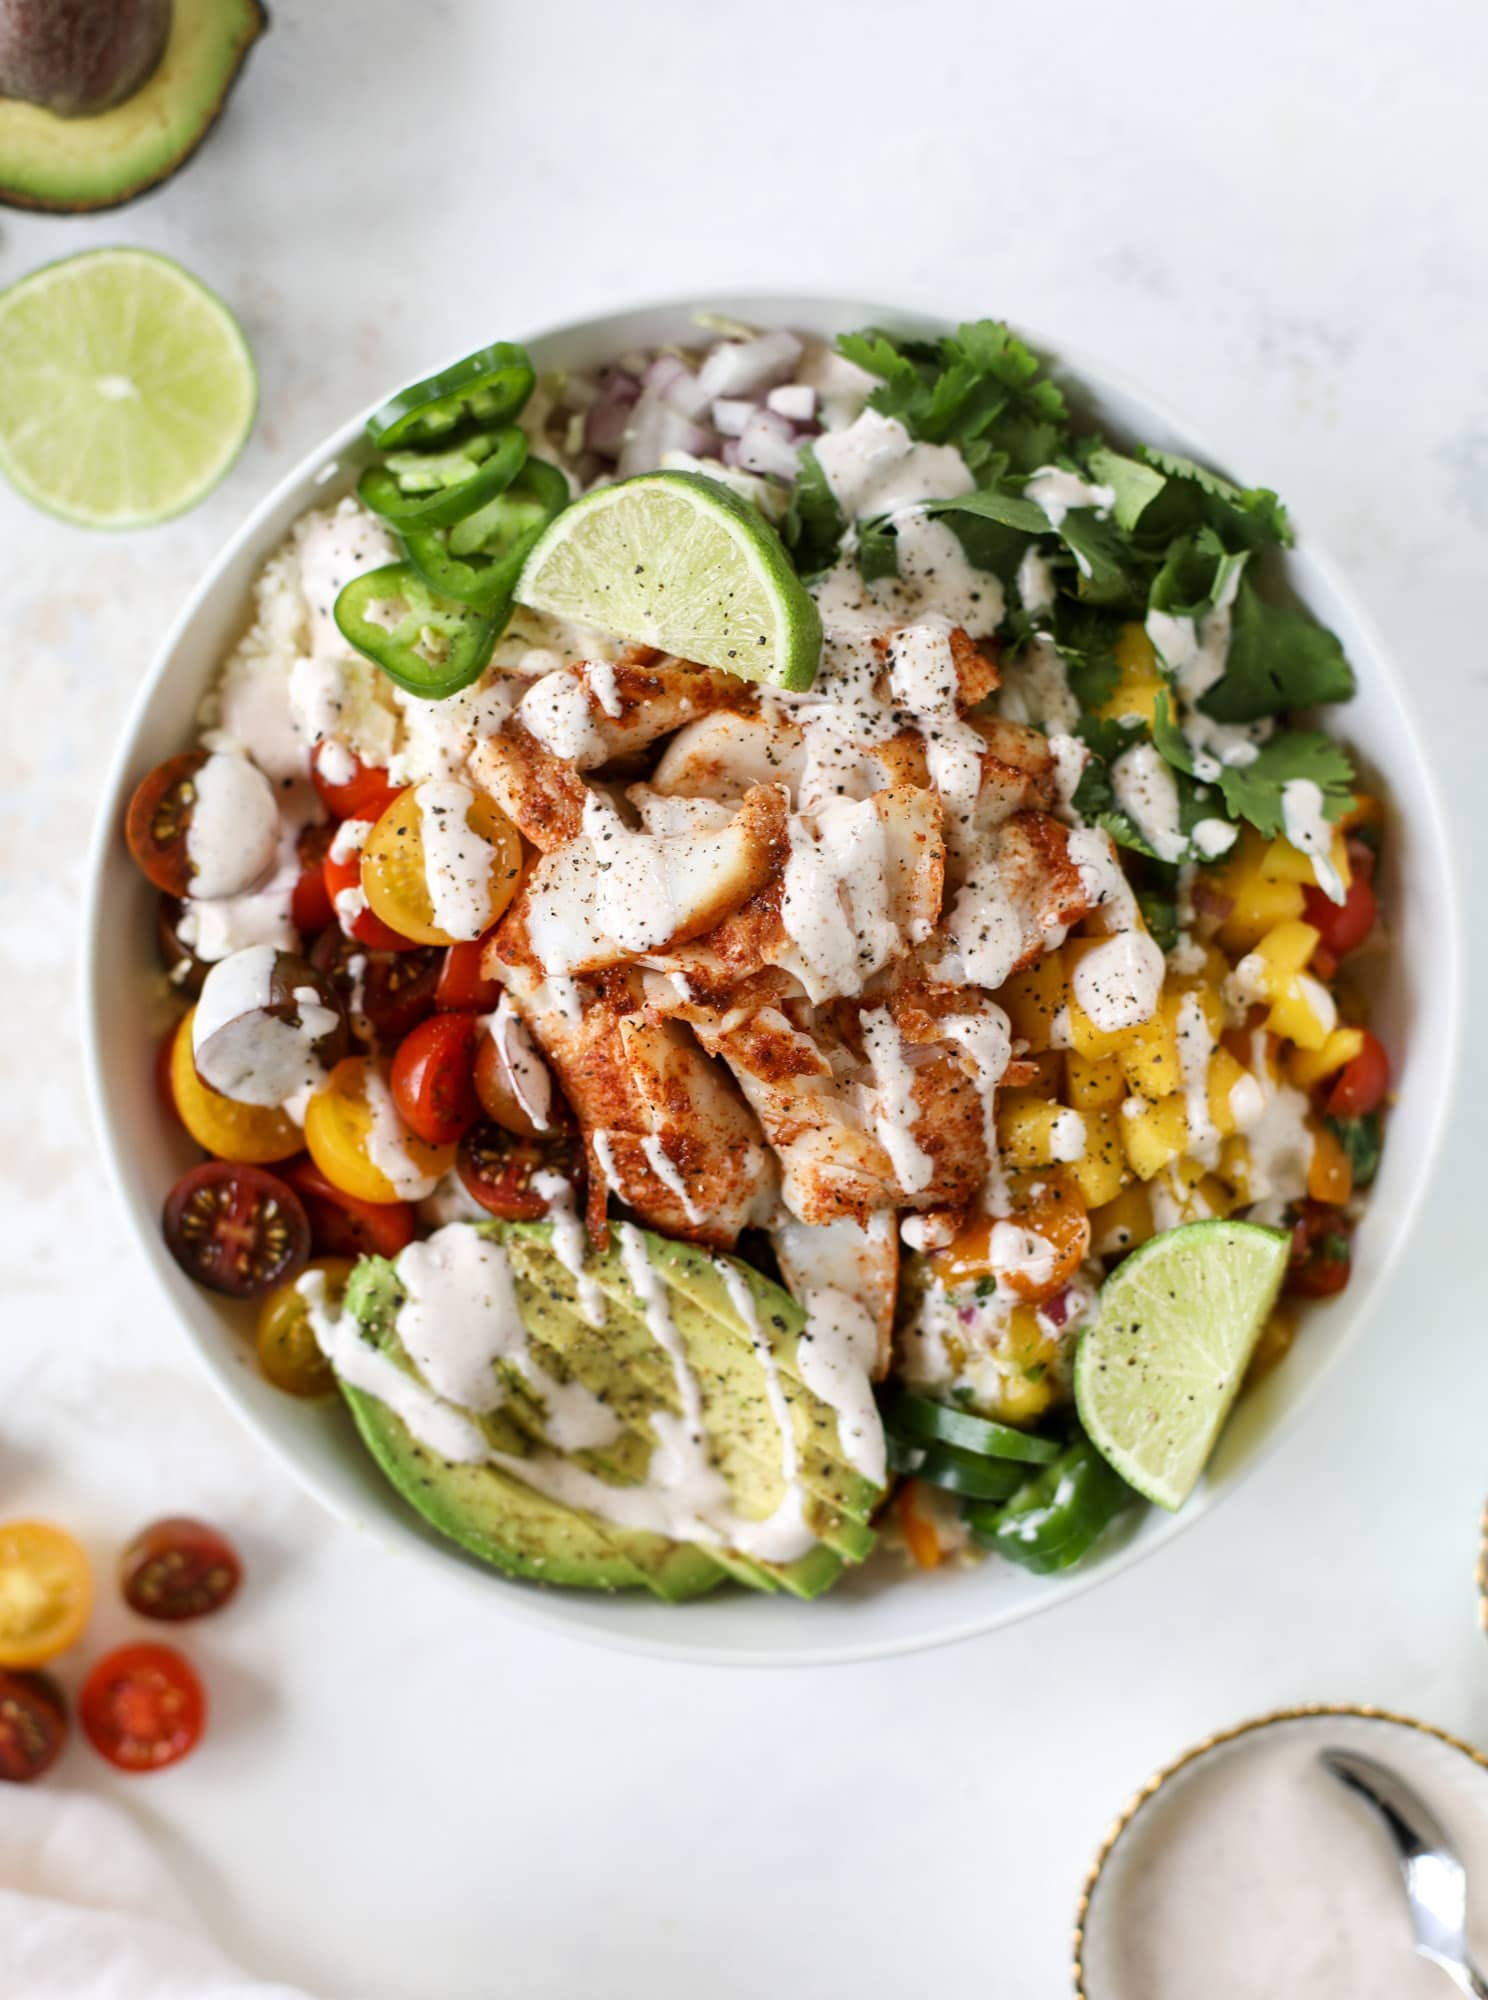 These fish taco bowls are an amazing weeknight meal idea! Napa cabbage for the base, a homemade chipotle crema, avocado, mango pico de gallo, spicy broiled white fish and lots of lime. Major flavor explosion and so easy too! I howsweeteats.com #fish #taco #bowls #spicy #healthy #dinner